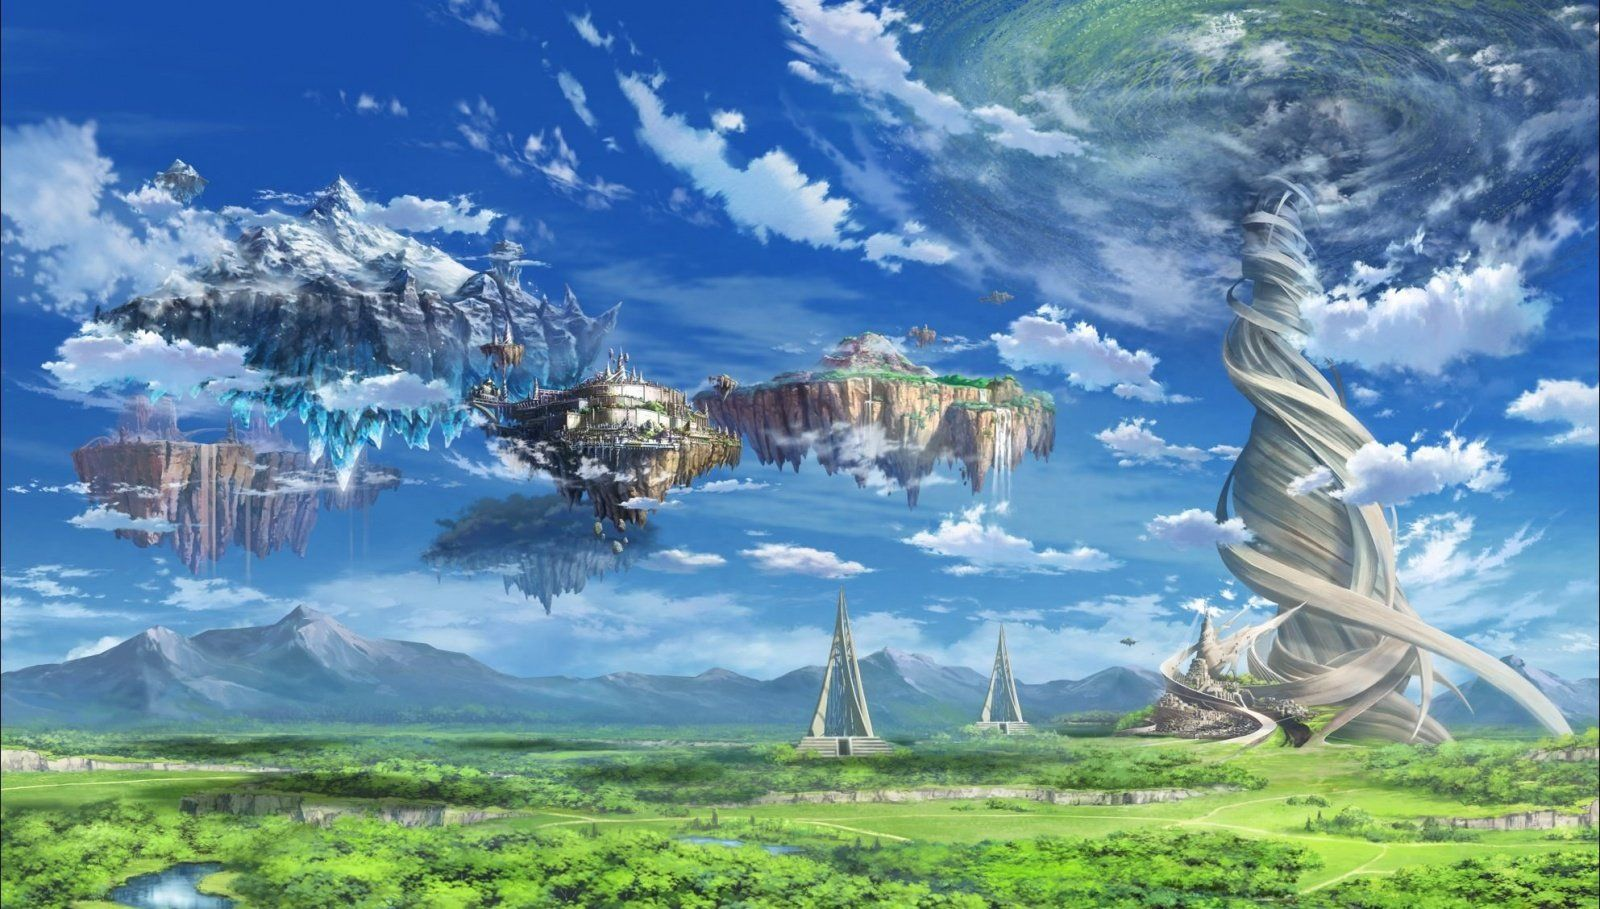 Anime Landscape Google Search